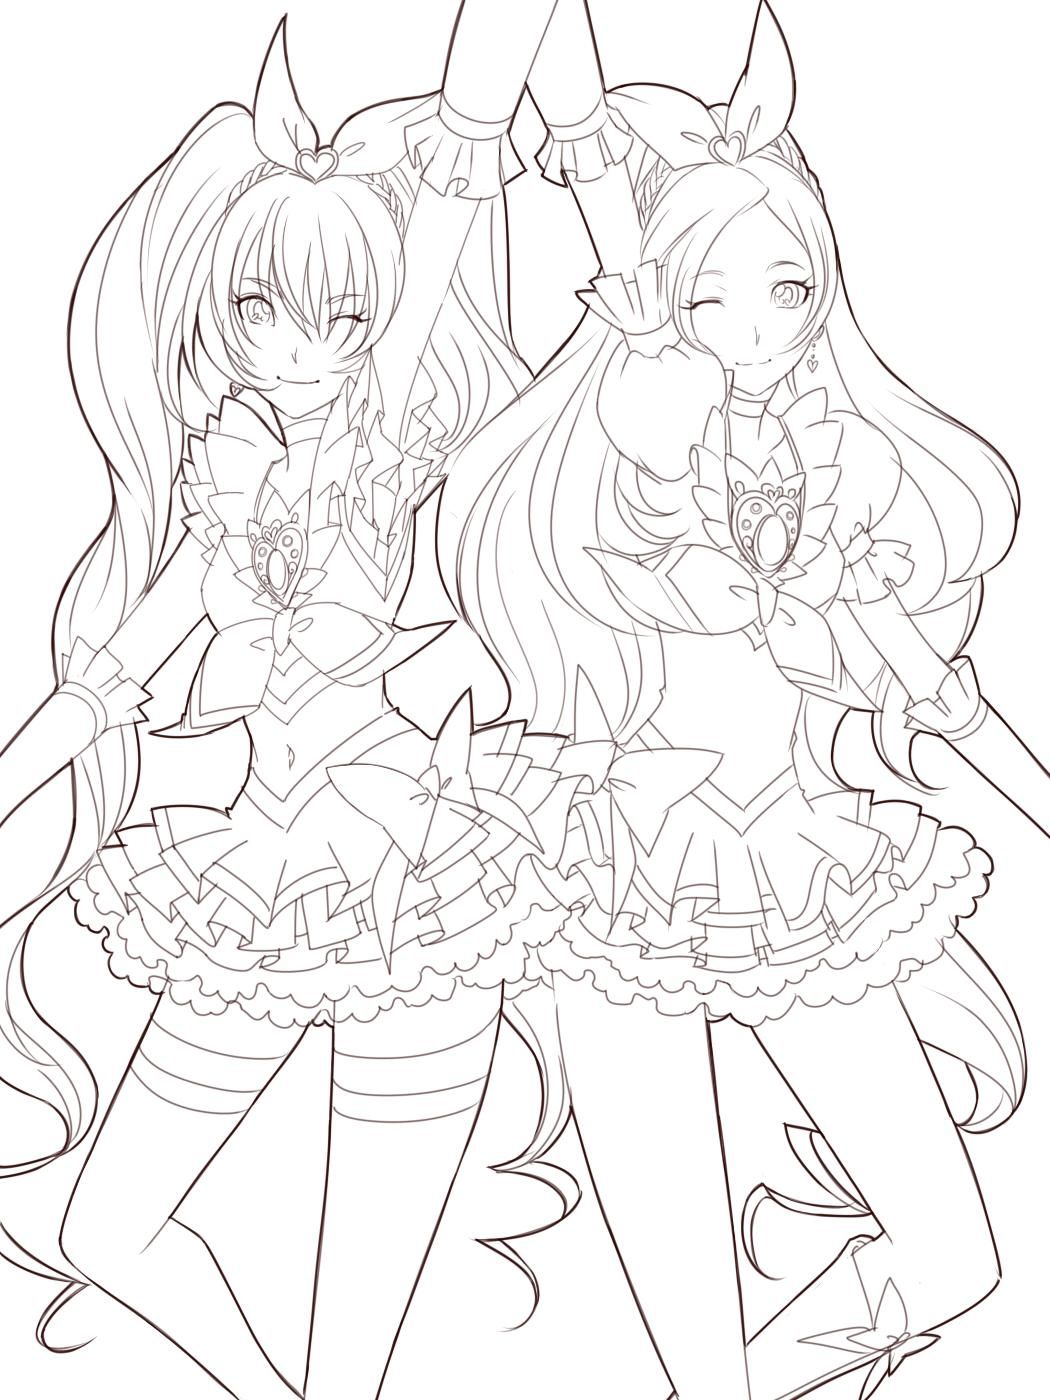 1050x1400 Anime Lineart Coloring Pages Coloring Sheets